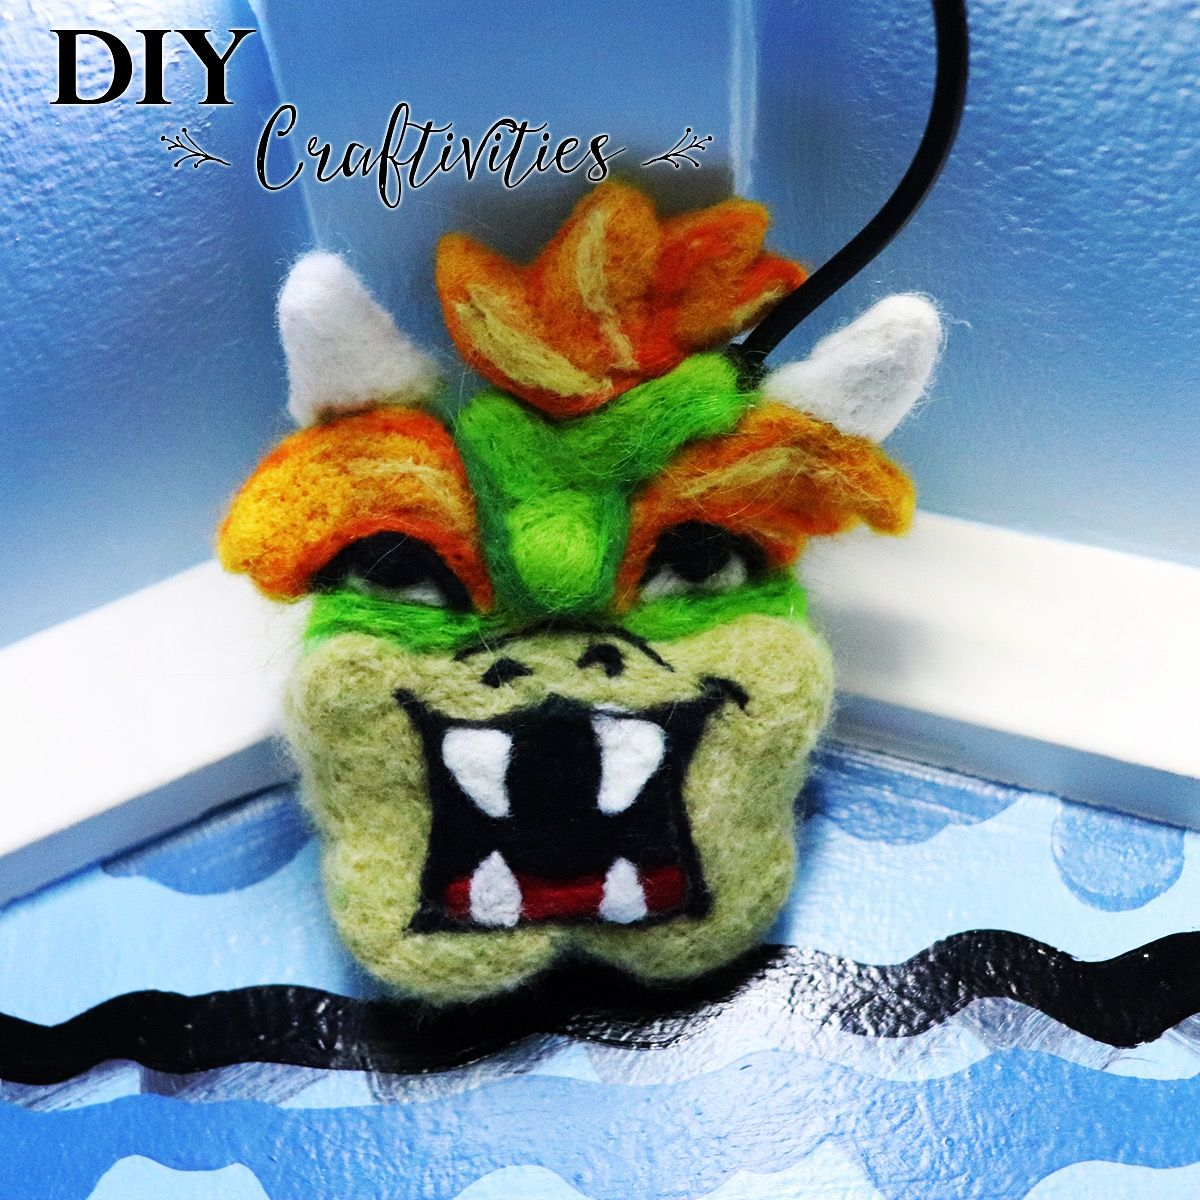 01efa93b2 Needle Felted Wool Mario Bowser. This handmade Nintendo icon is hiding some  LED wires in our Mario themed playroom. #needlefelting #needlefelted # felting ...